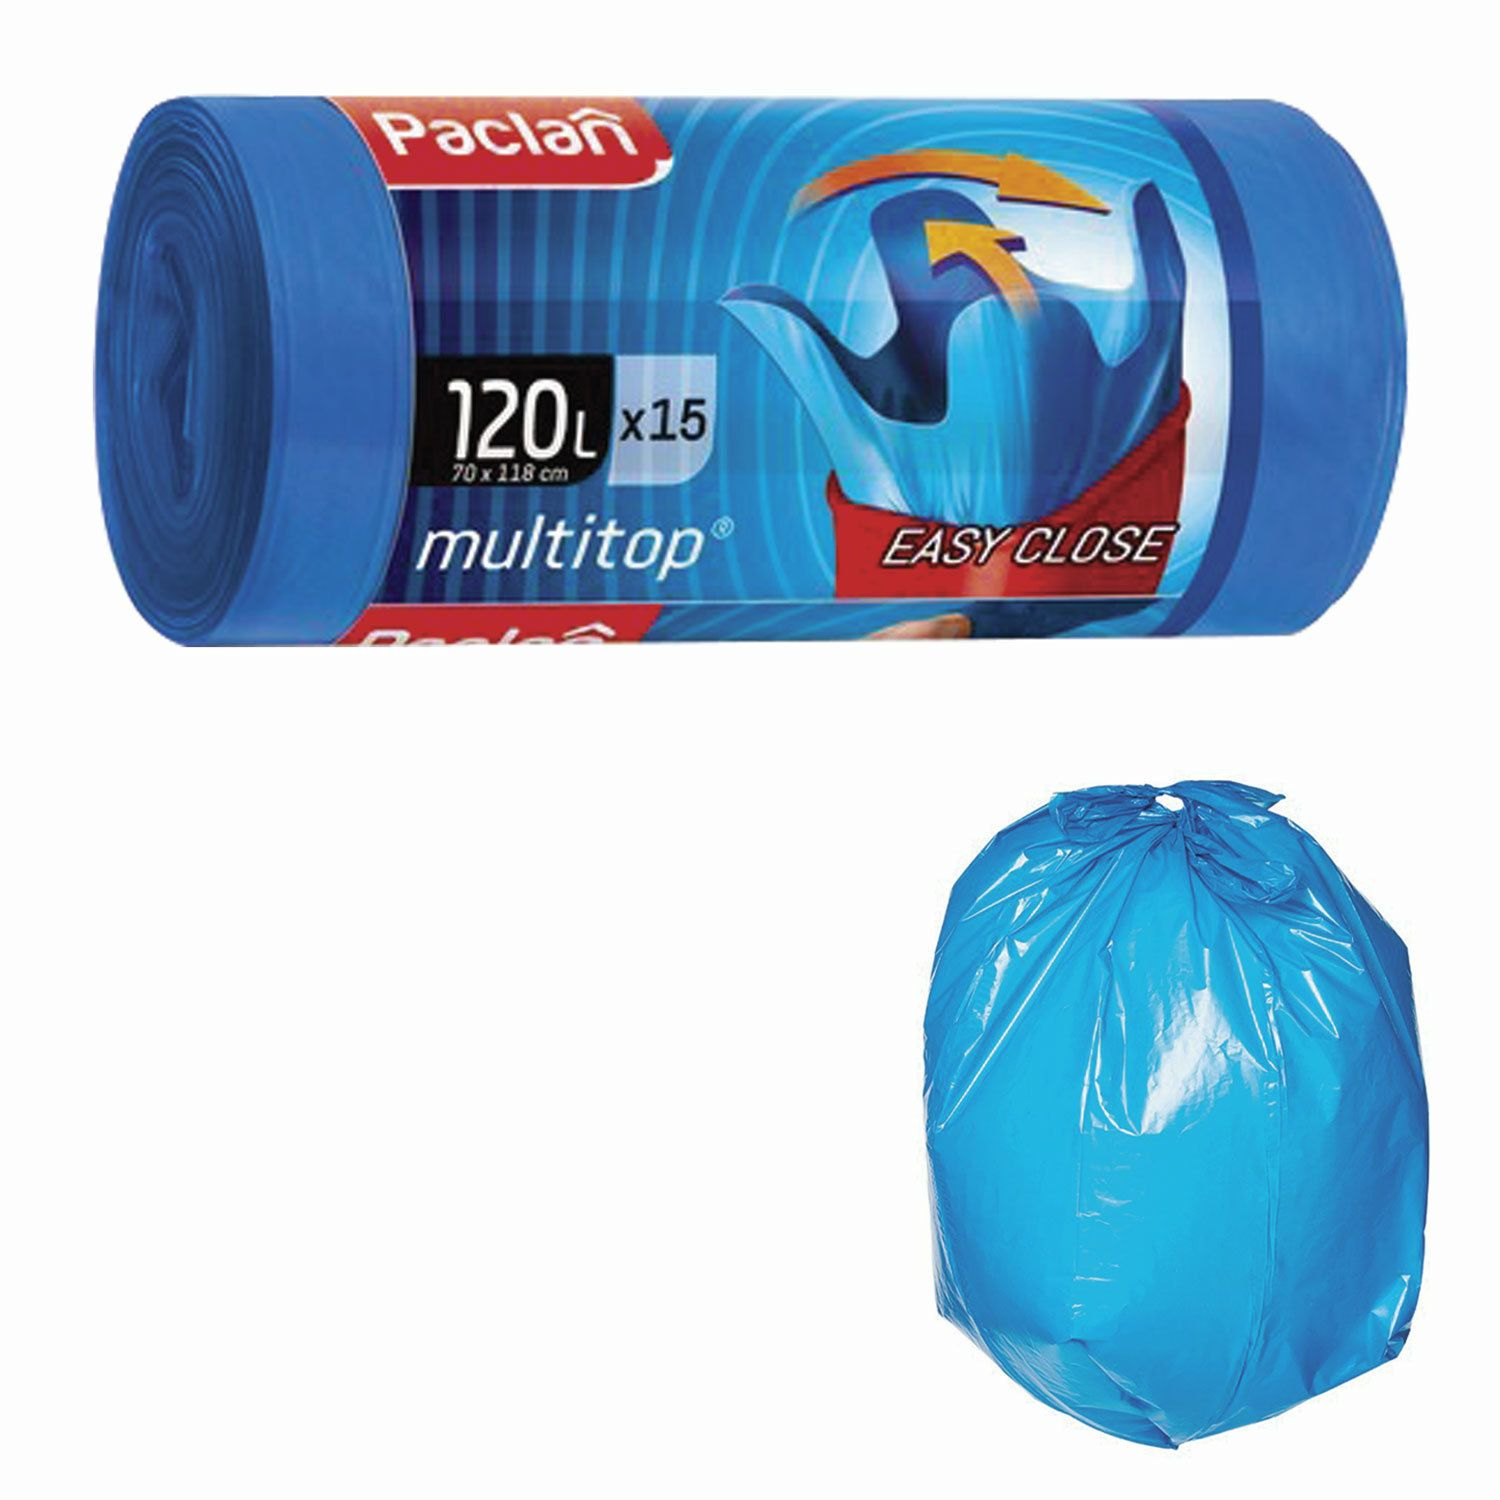 "PACLAN / Garbage bags ""Multitop"" 120 l, with ears, blue, LDPE, 24 microns, 70x118 cm, roll of 15 pcs."